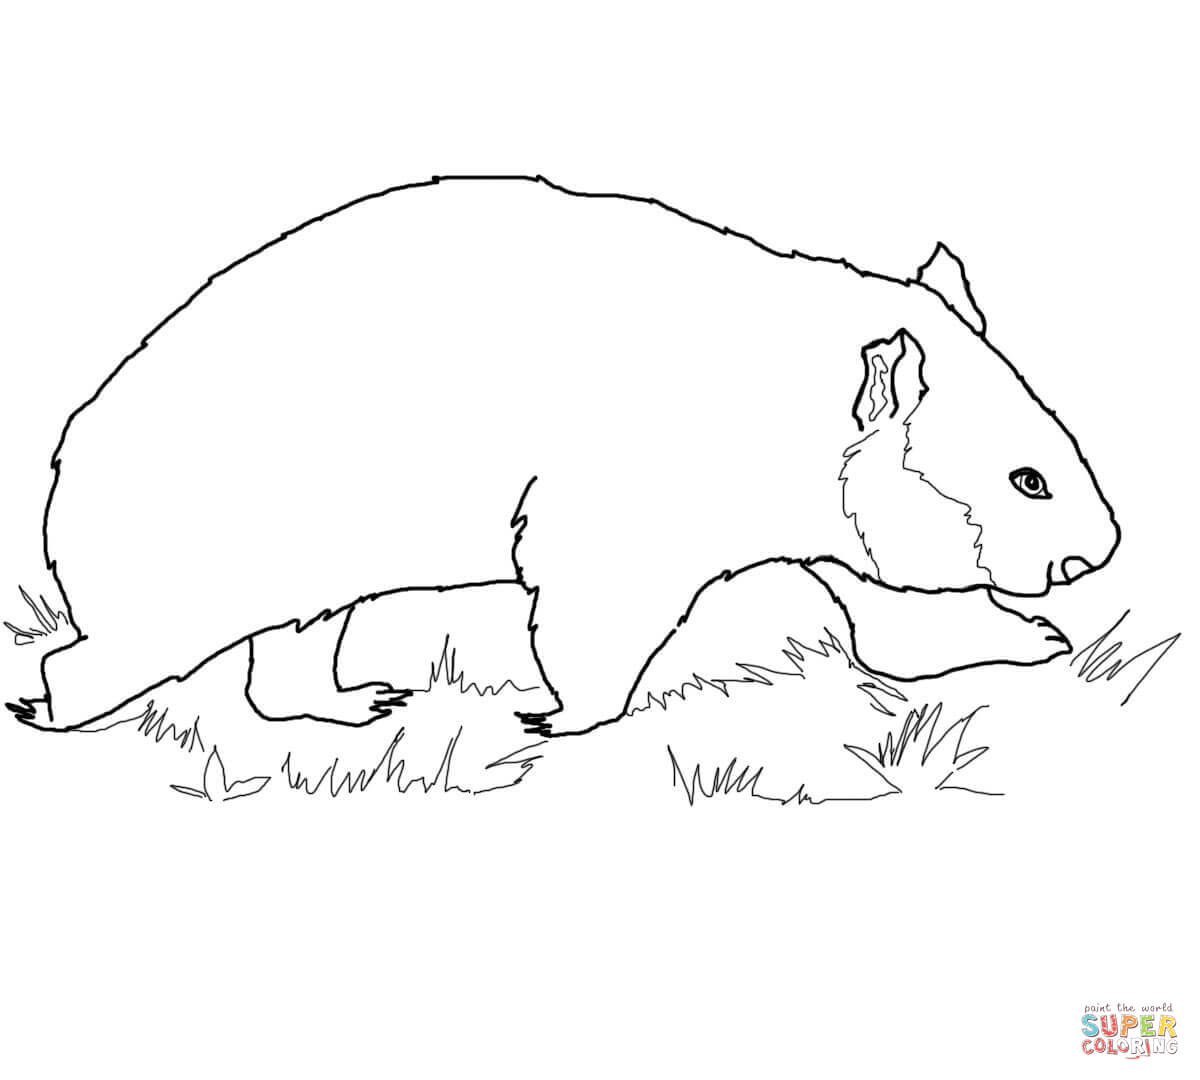 wombat colouring wombat coloring download wombat coloring for free 2019 colouring wombat